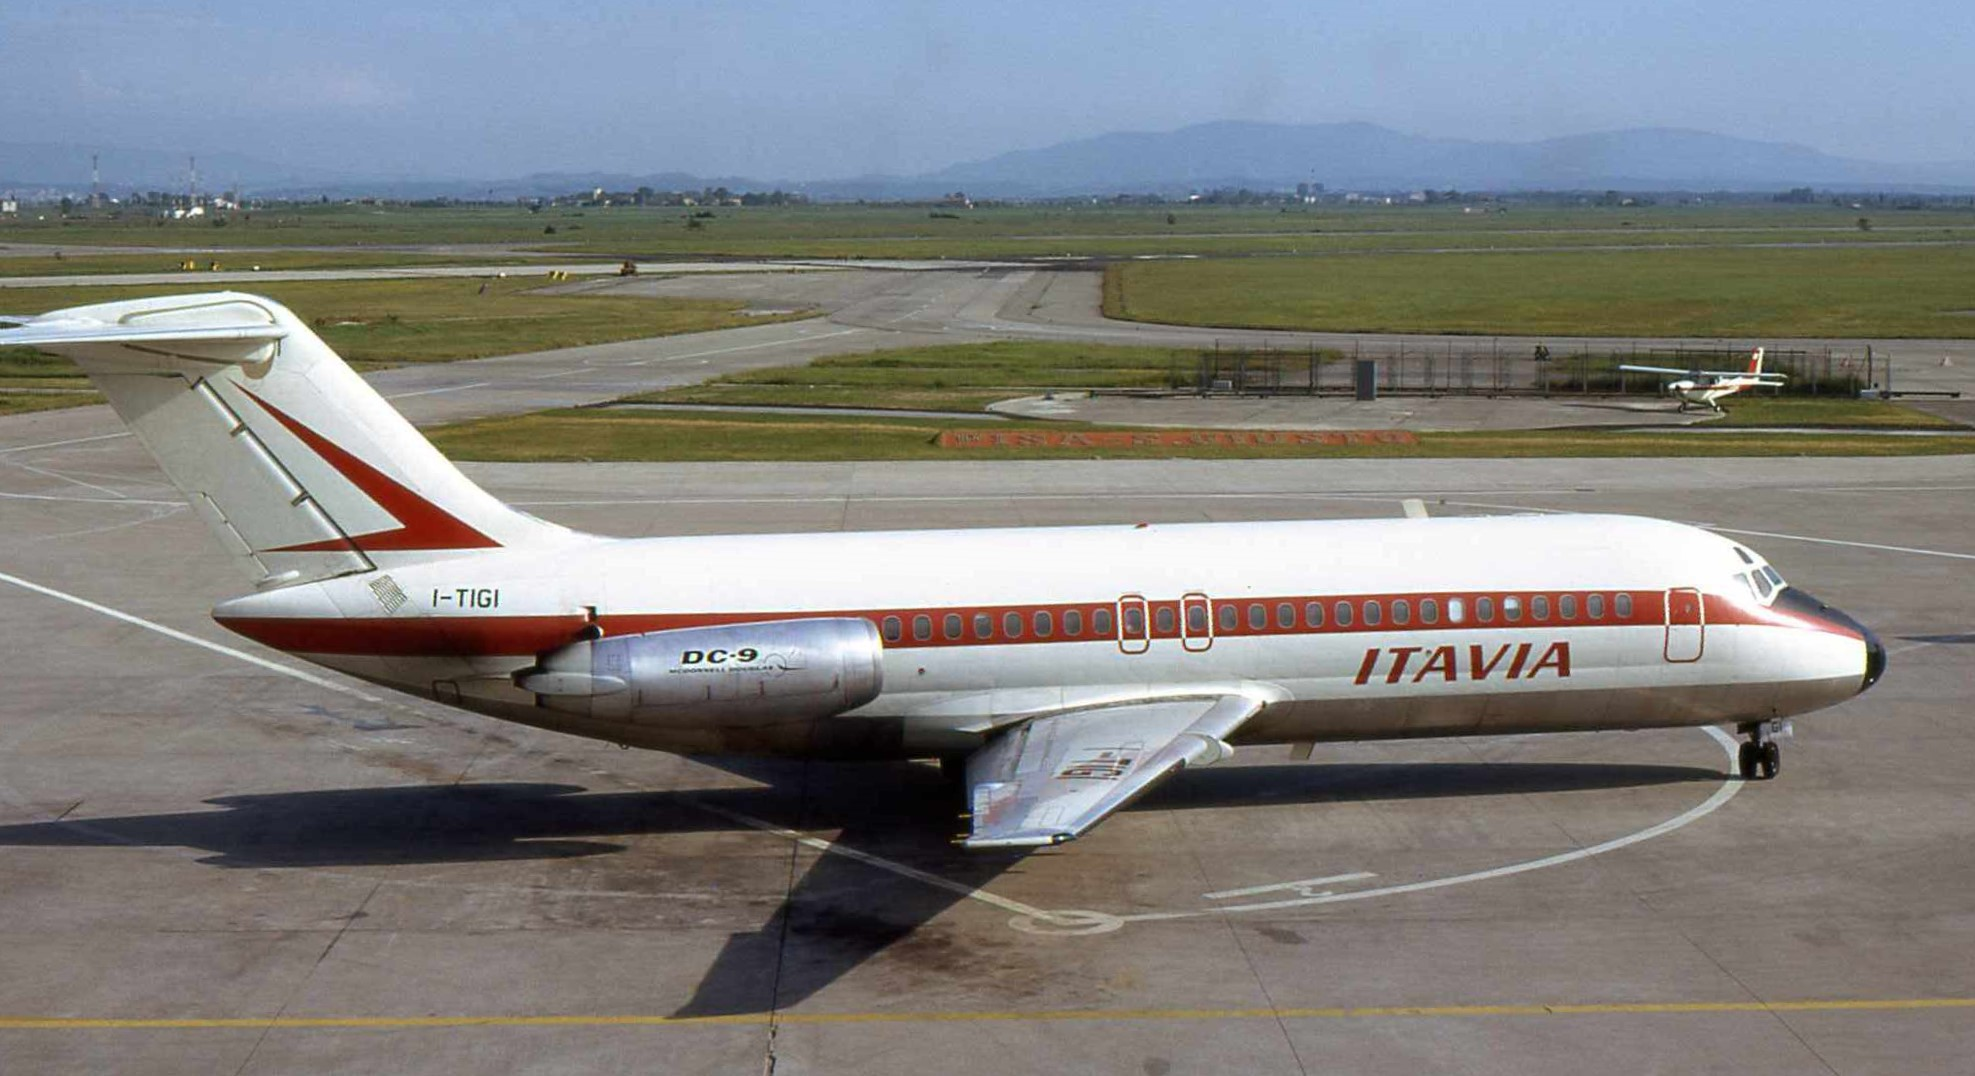 Itavia Flight 870 - Wikipedia